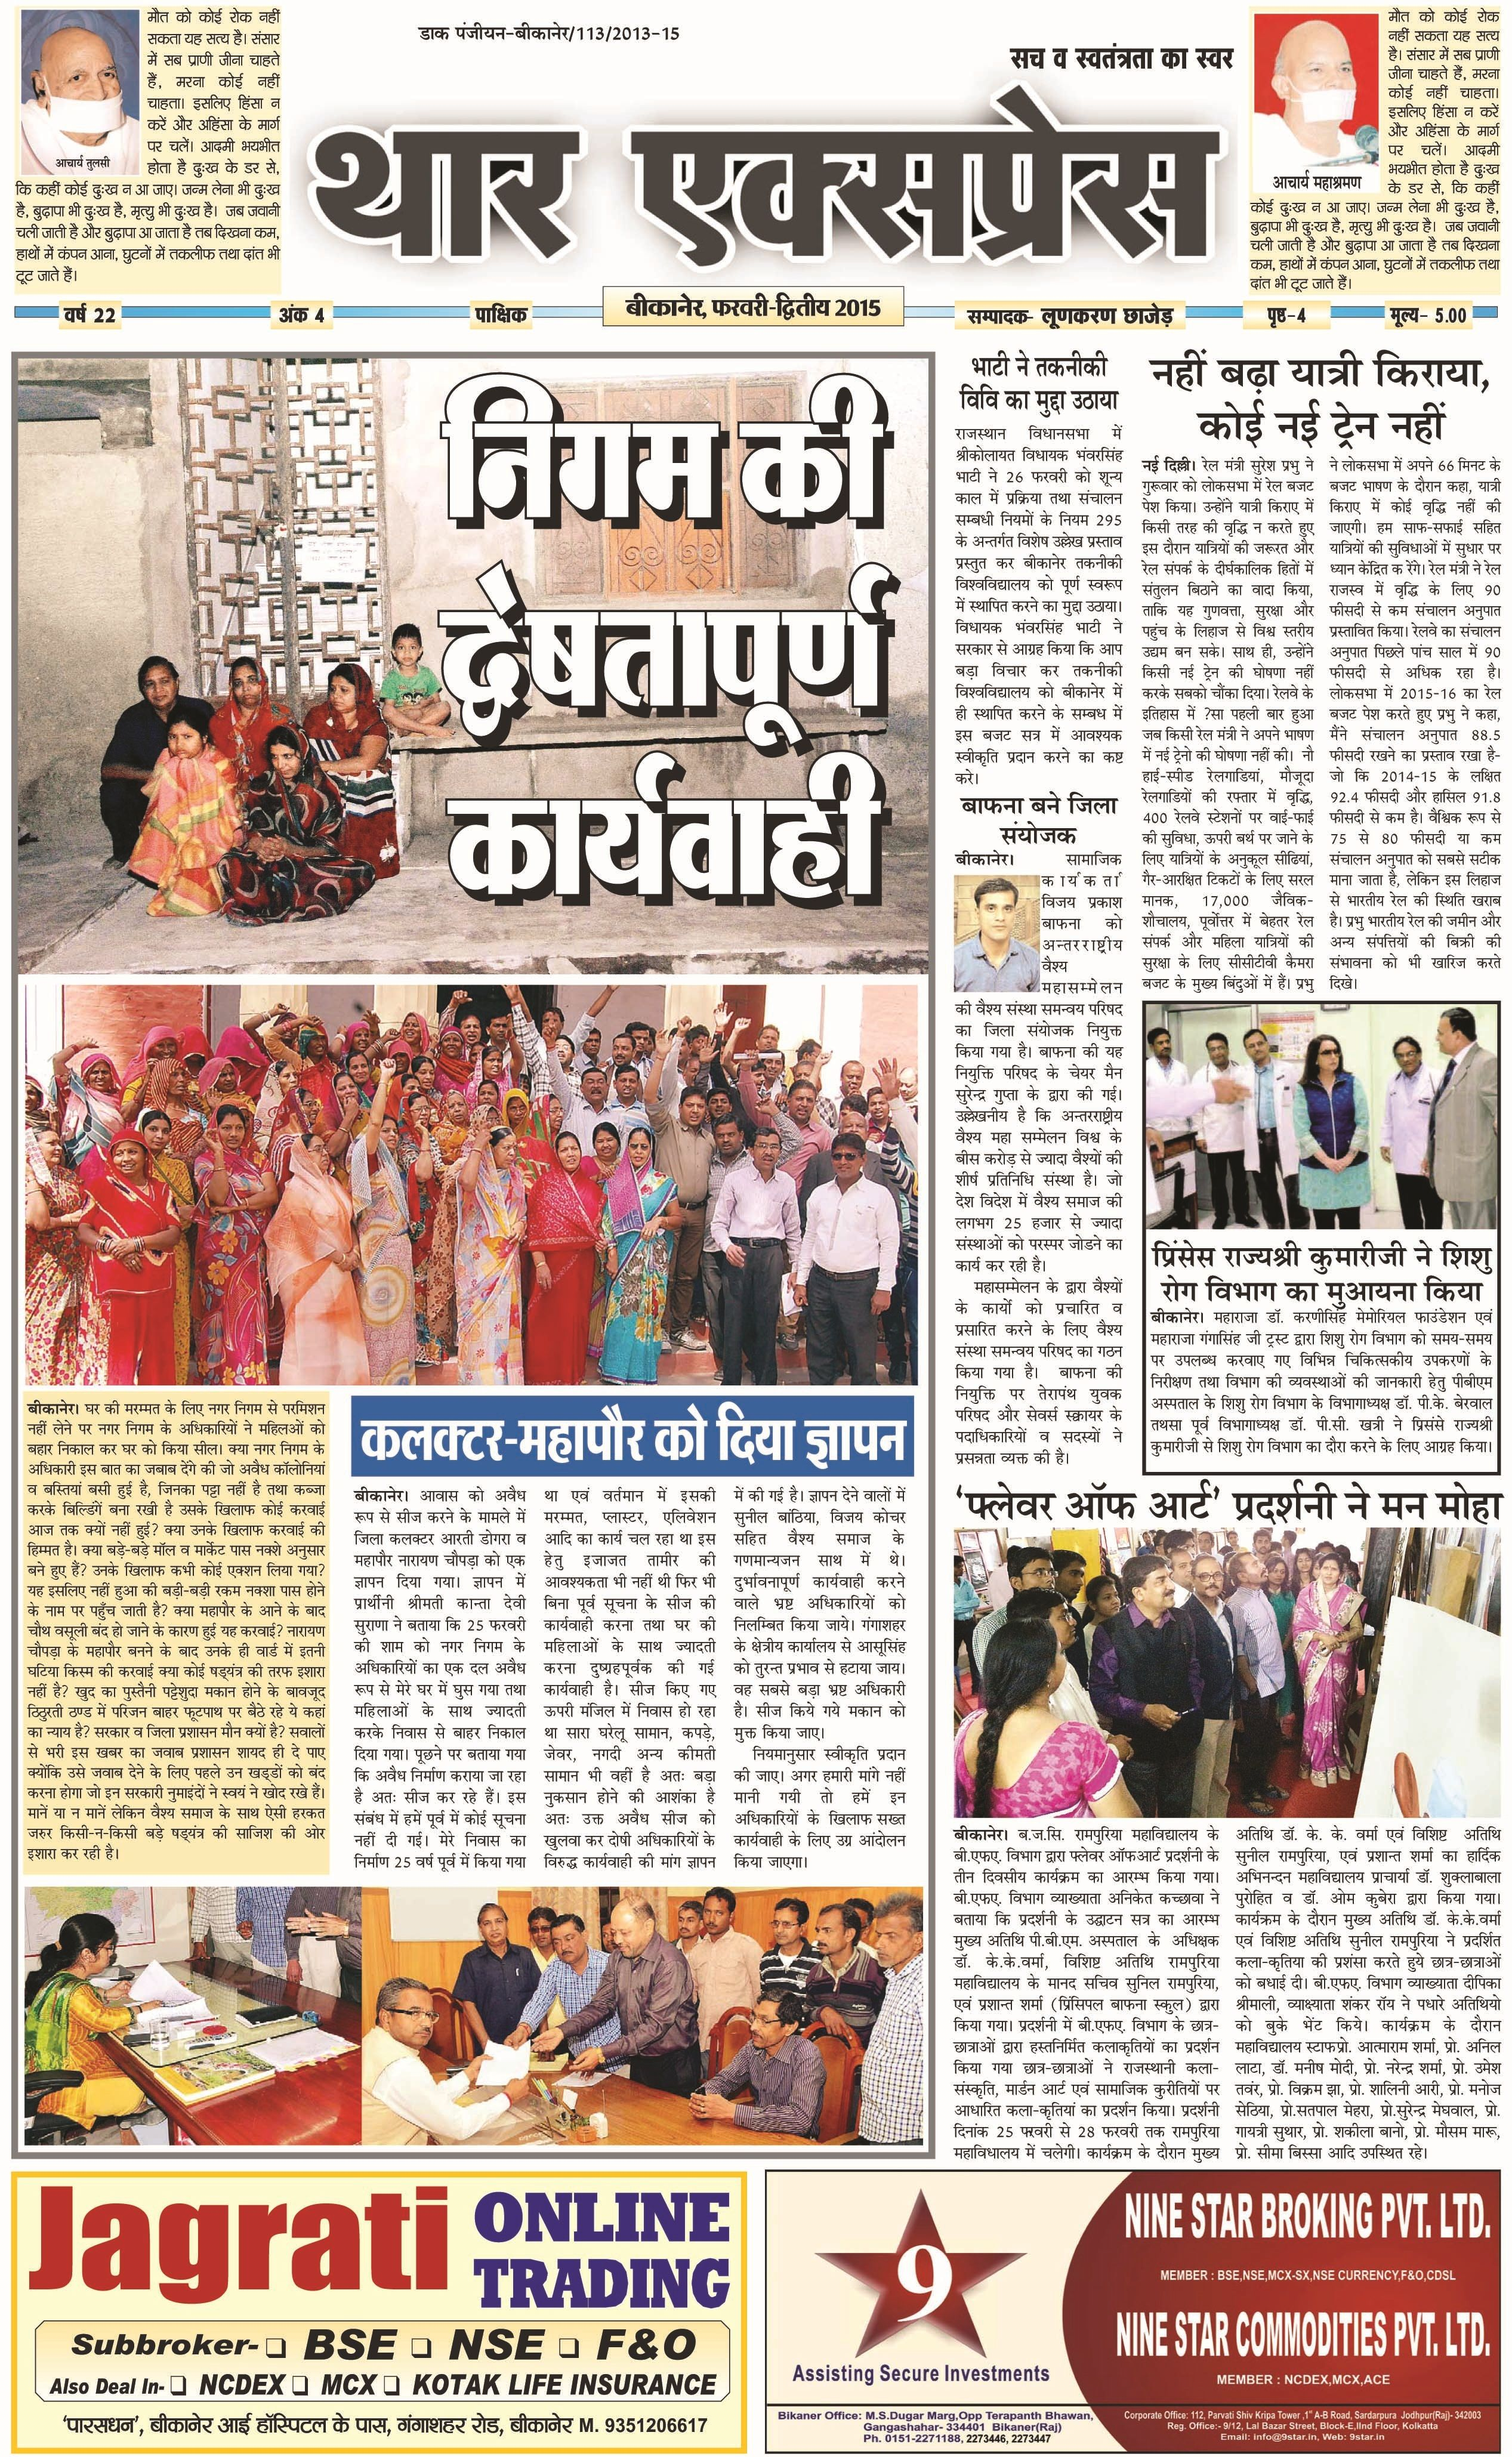 Thar express 27 feb 2015 page 1 Event ticket, Photo wall